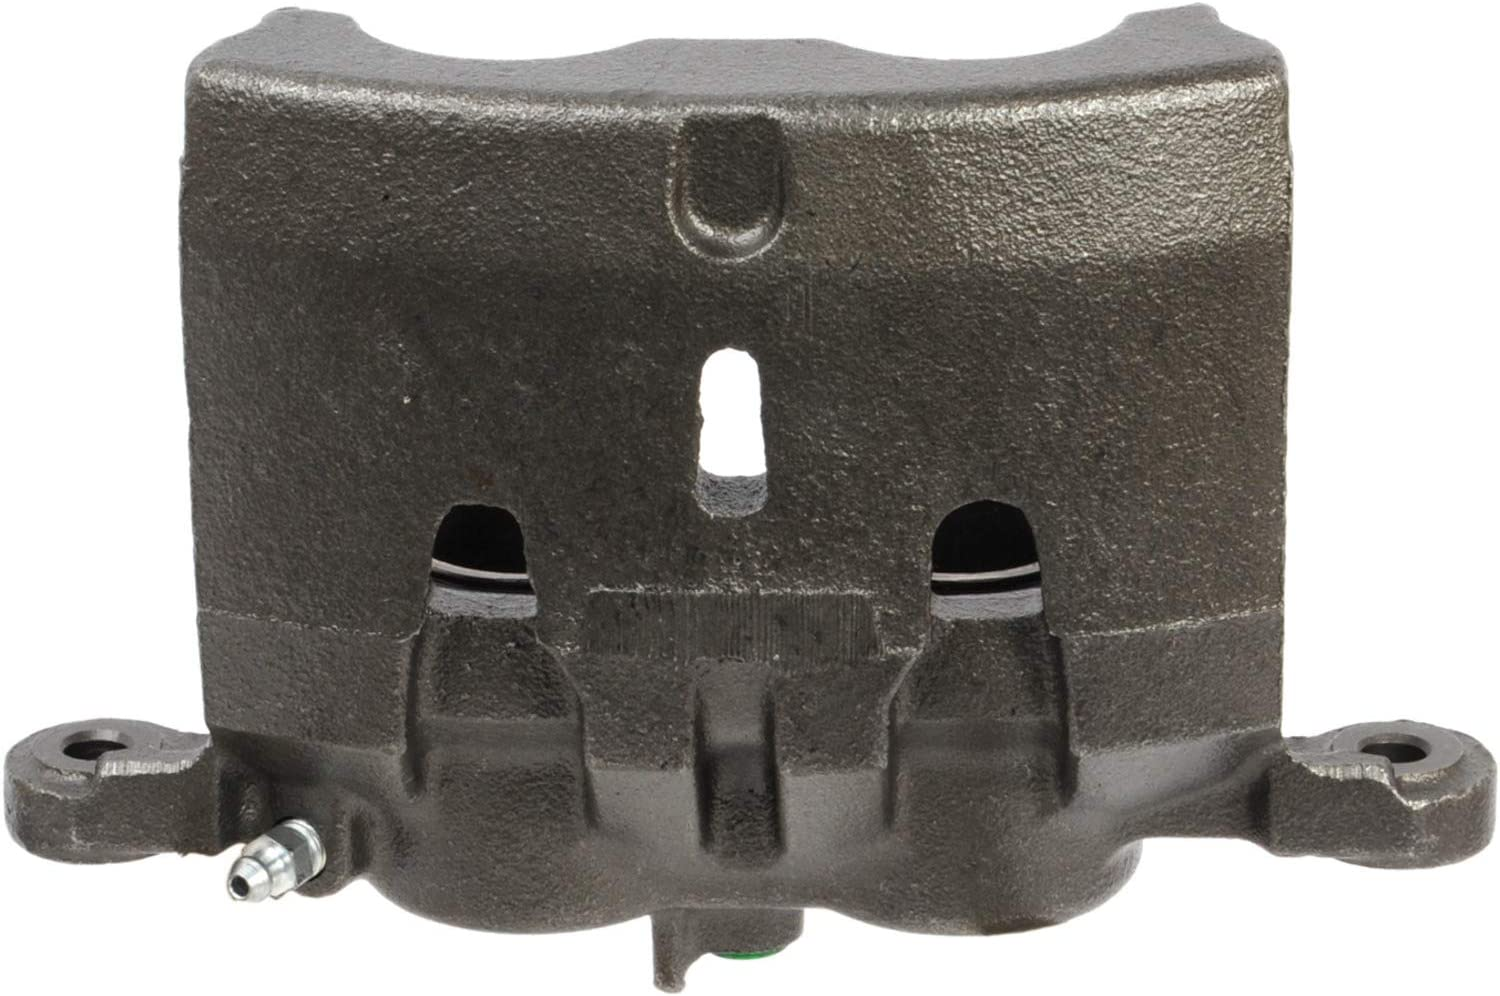 Brake Caliper Unloaded Cardone 19-3826 Remanufactured Import Friction Ready